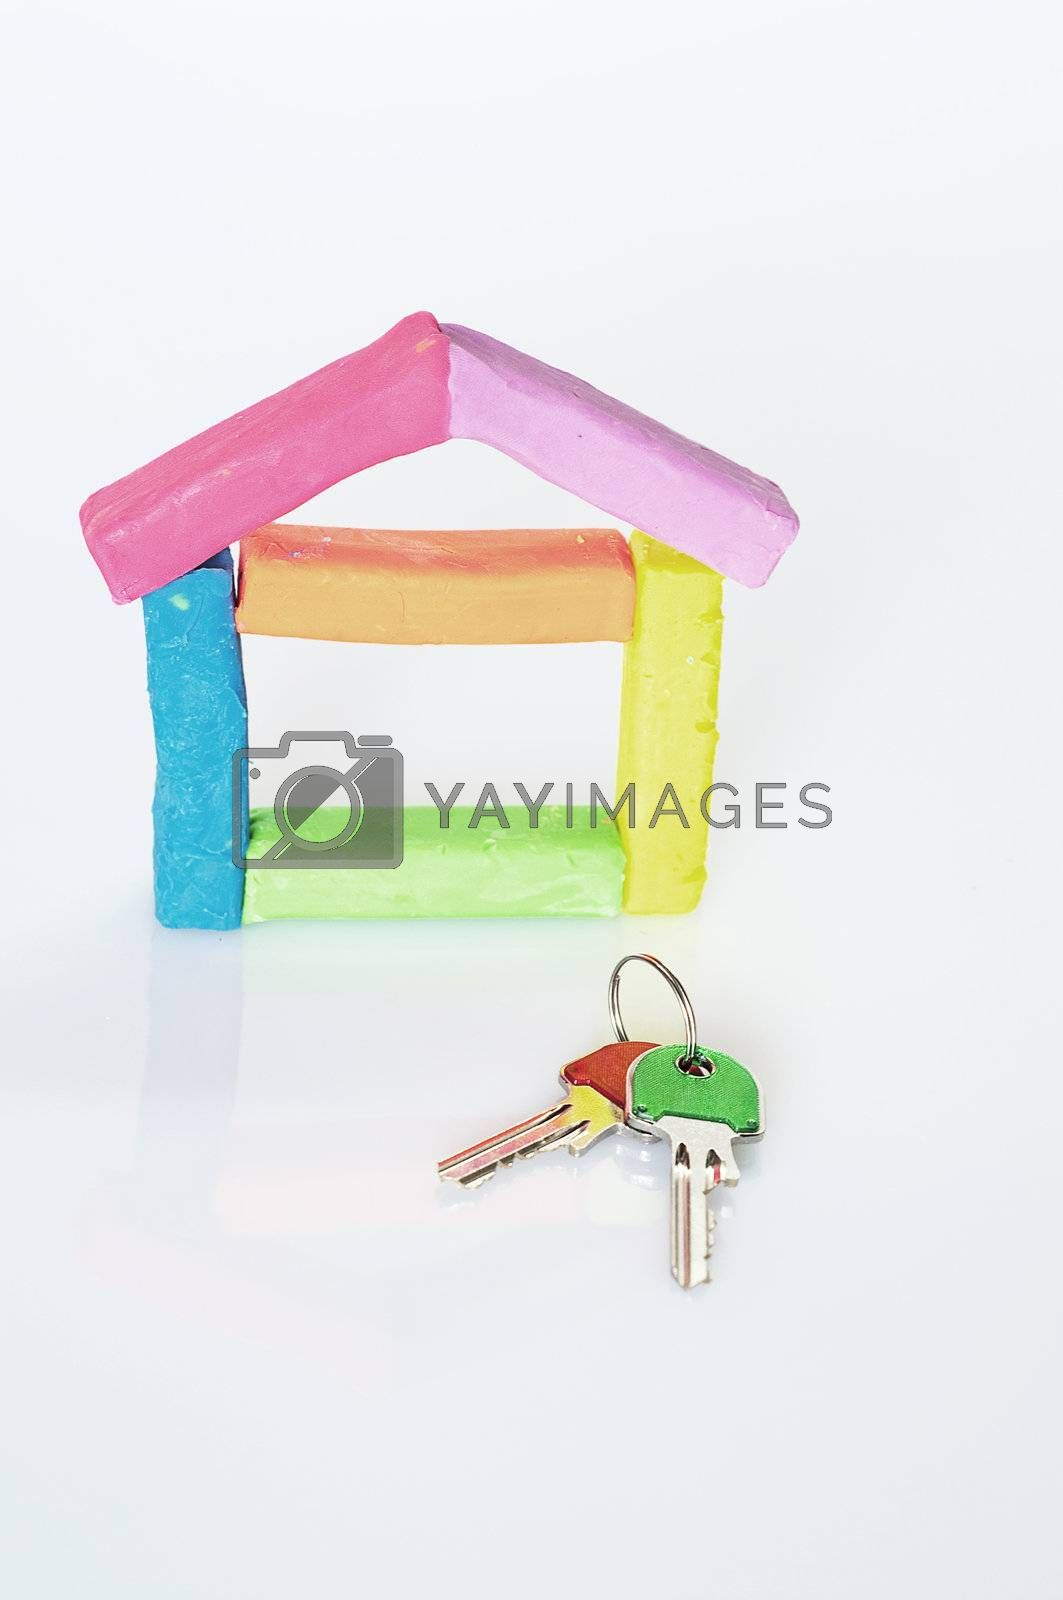 house composed of colored clay on a white background with two keys of different colors